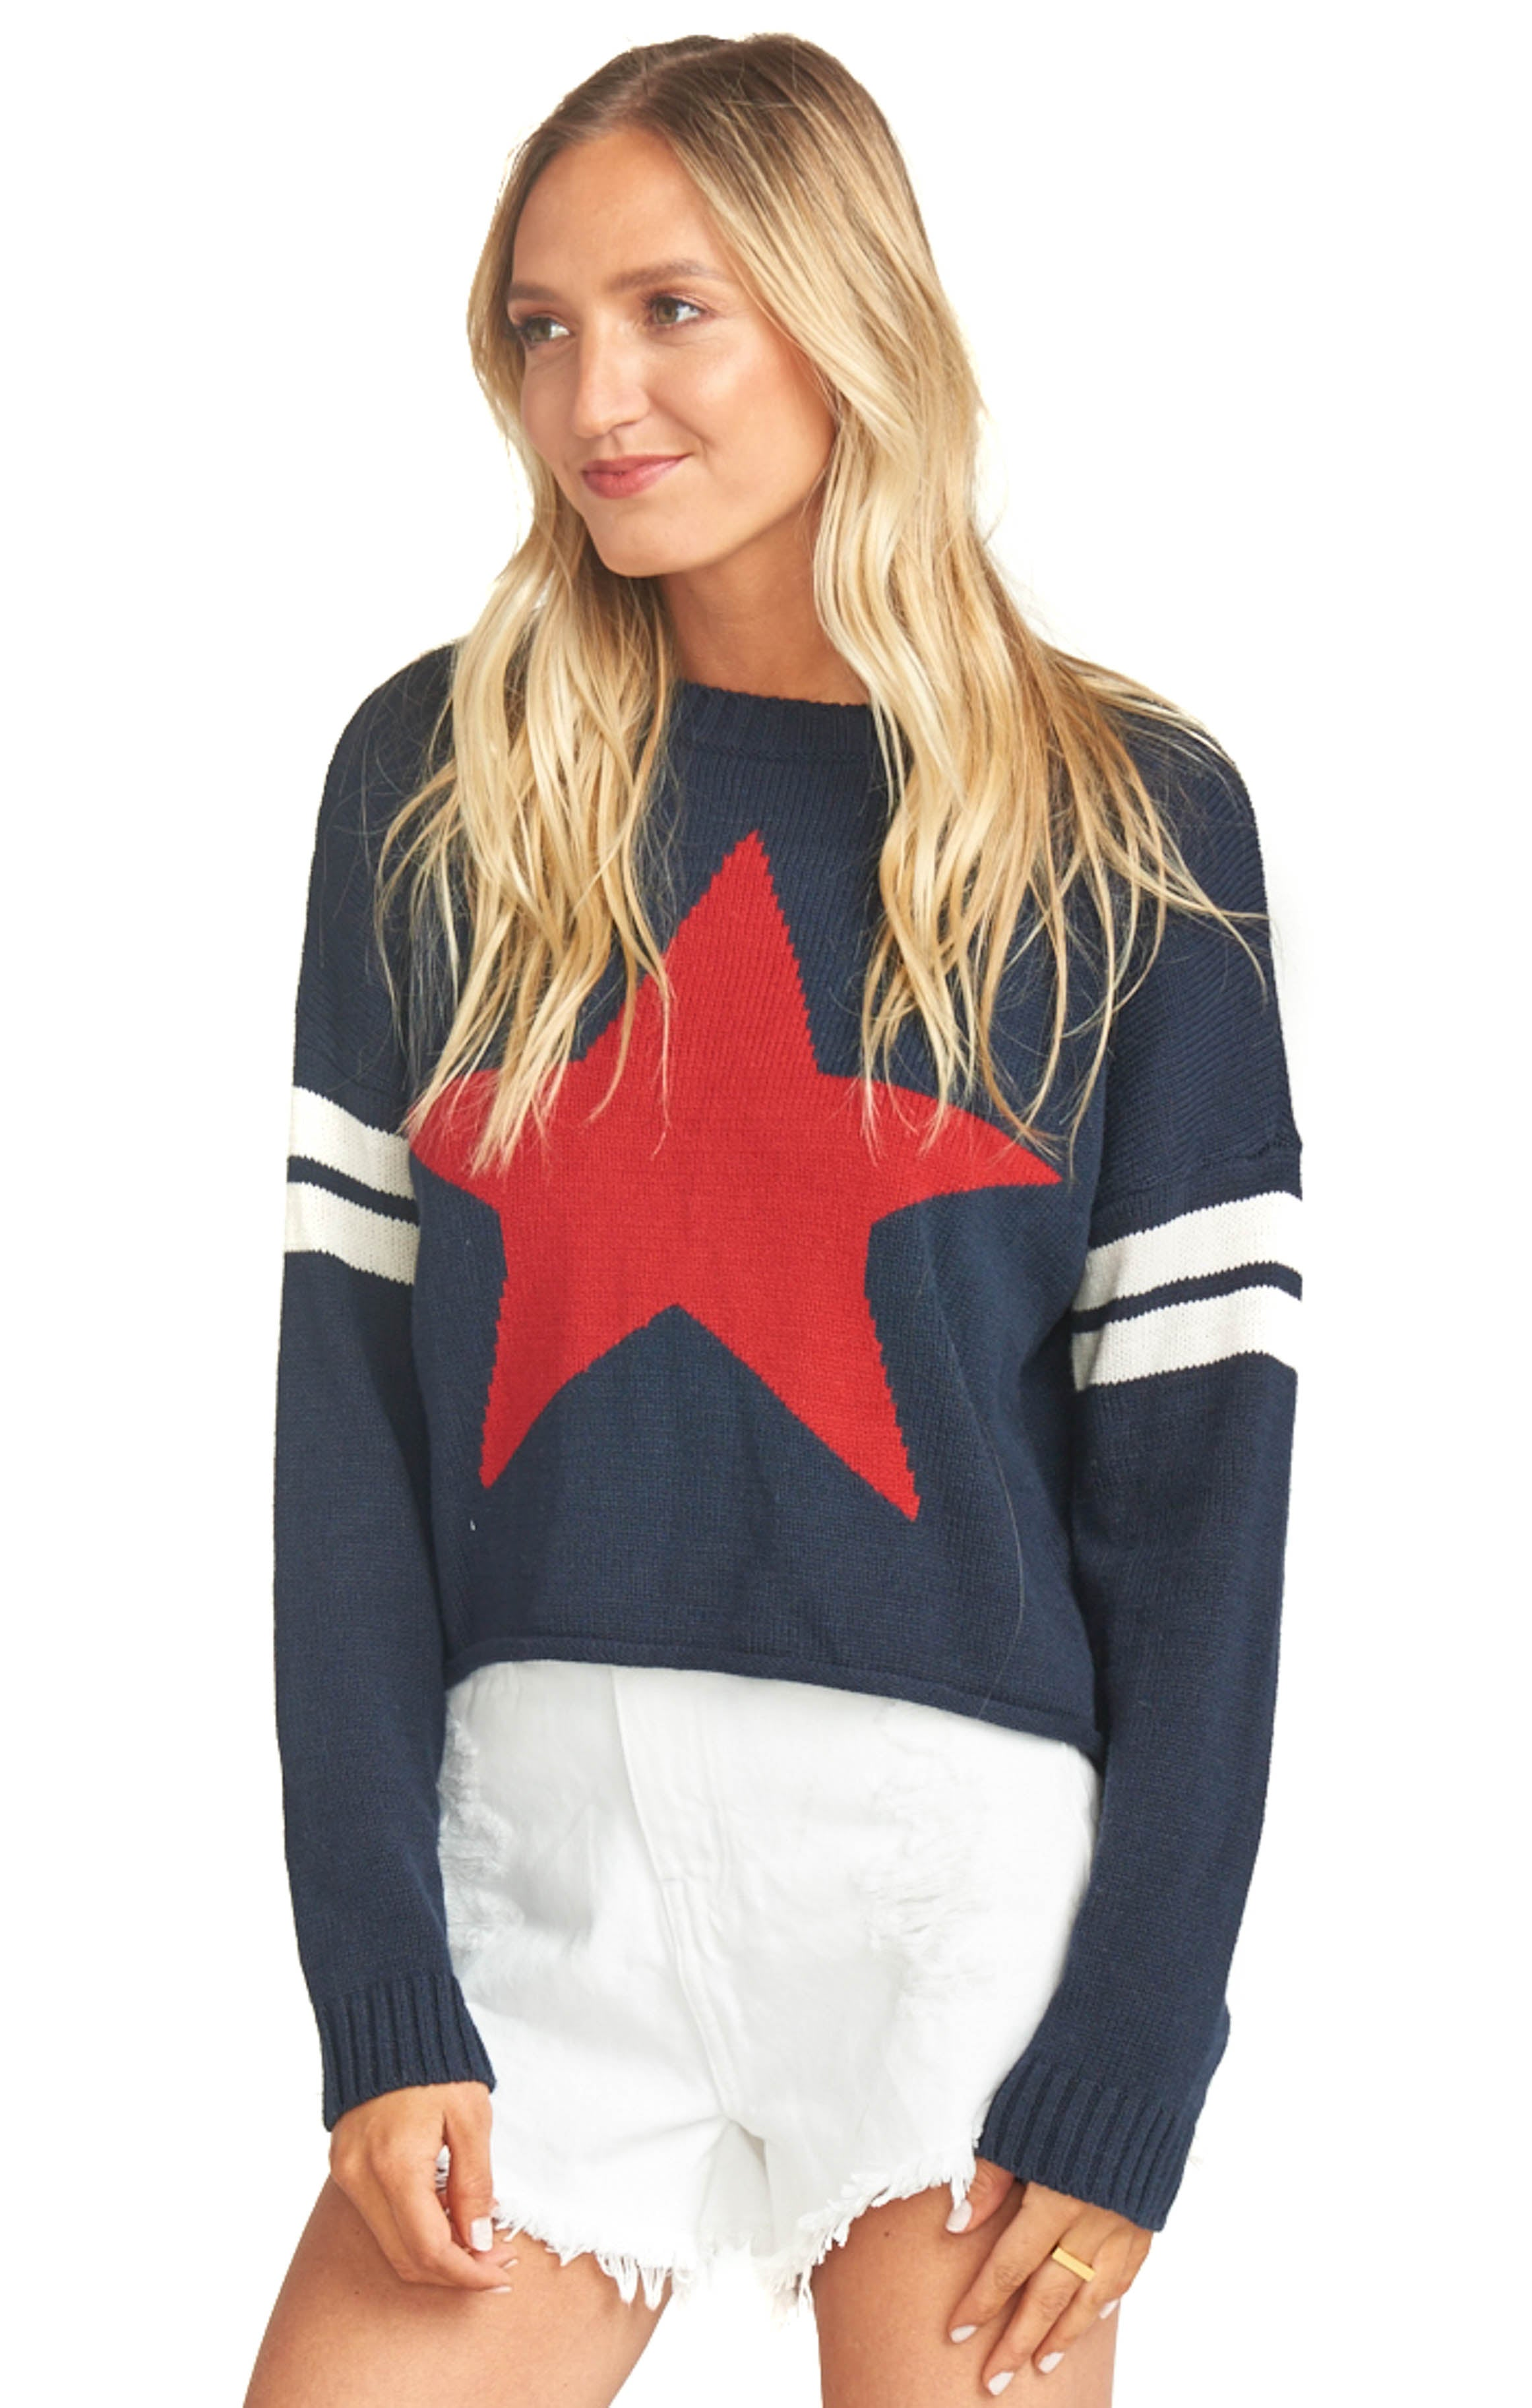 Lone Star Knit Cropped Varsity Sweater